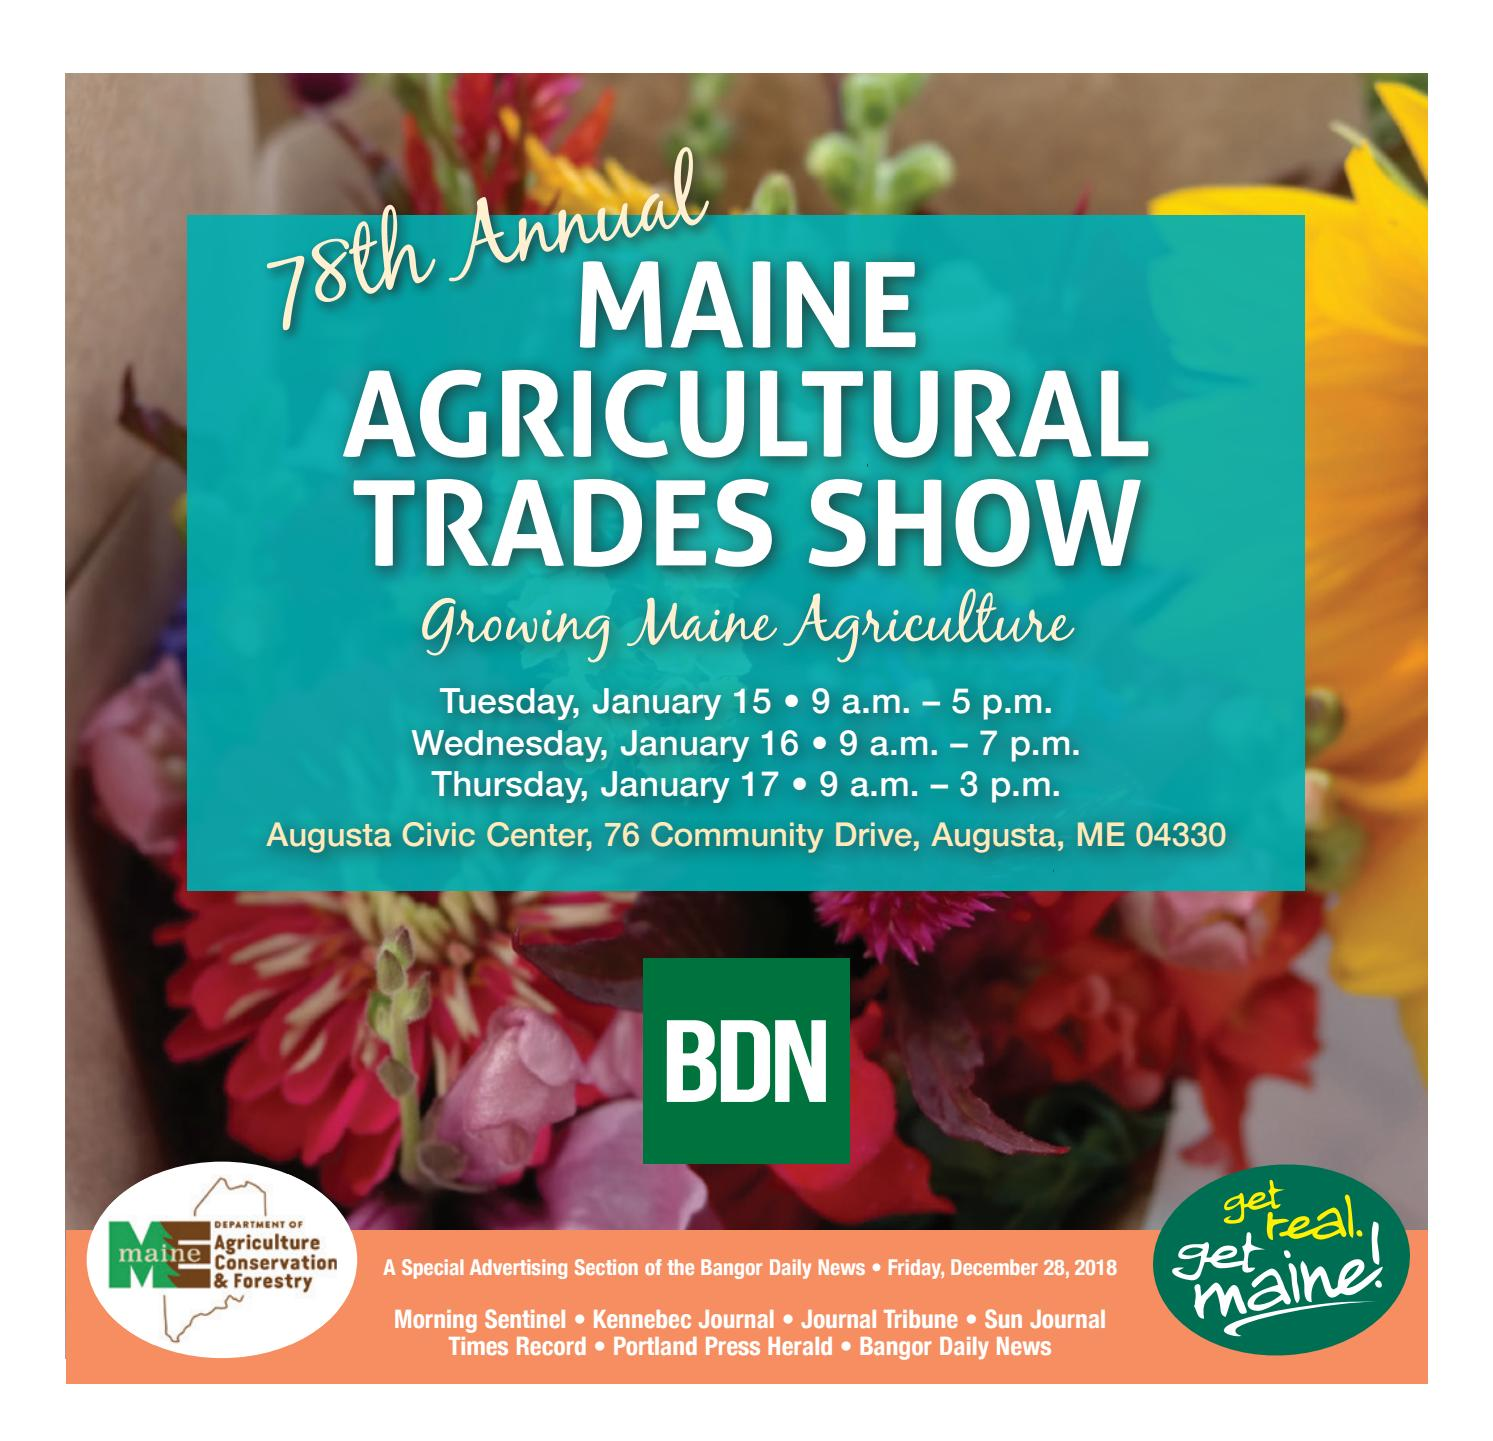 Maine Agricultural Trades Show Program by Bangor Daily News - issuu